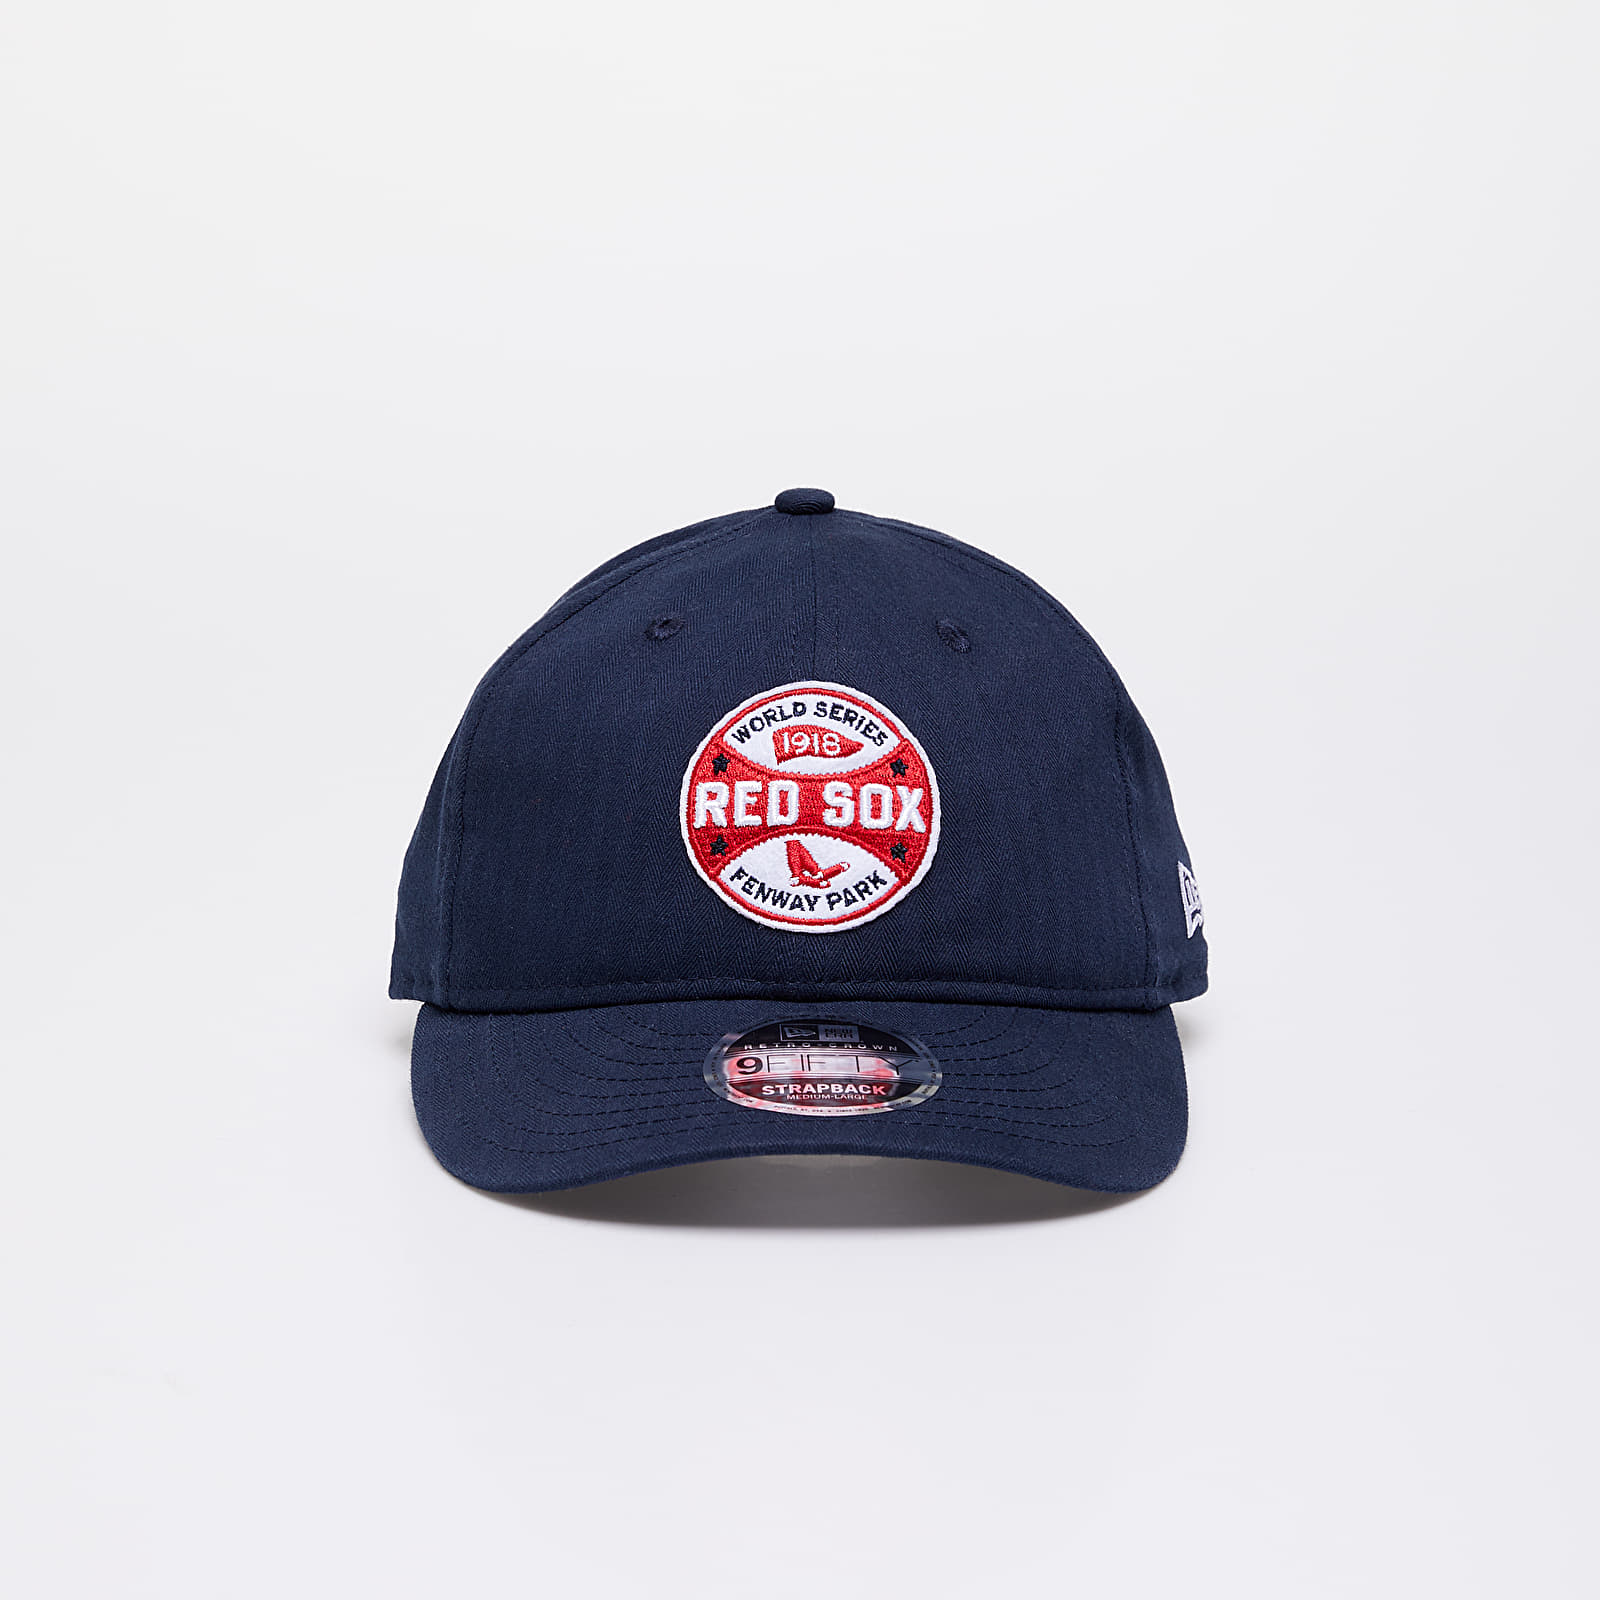 Шапки с козирка New Era 9Fifty MLB Cooperstown Red Sox Hat Navy Blue